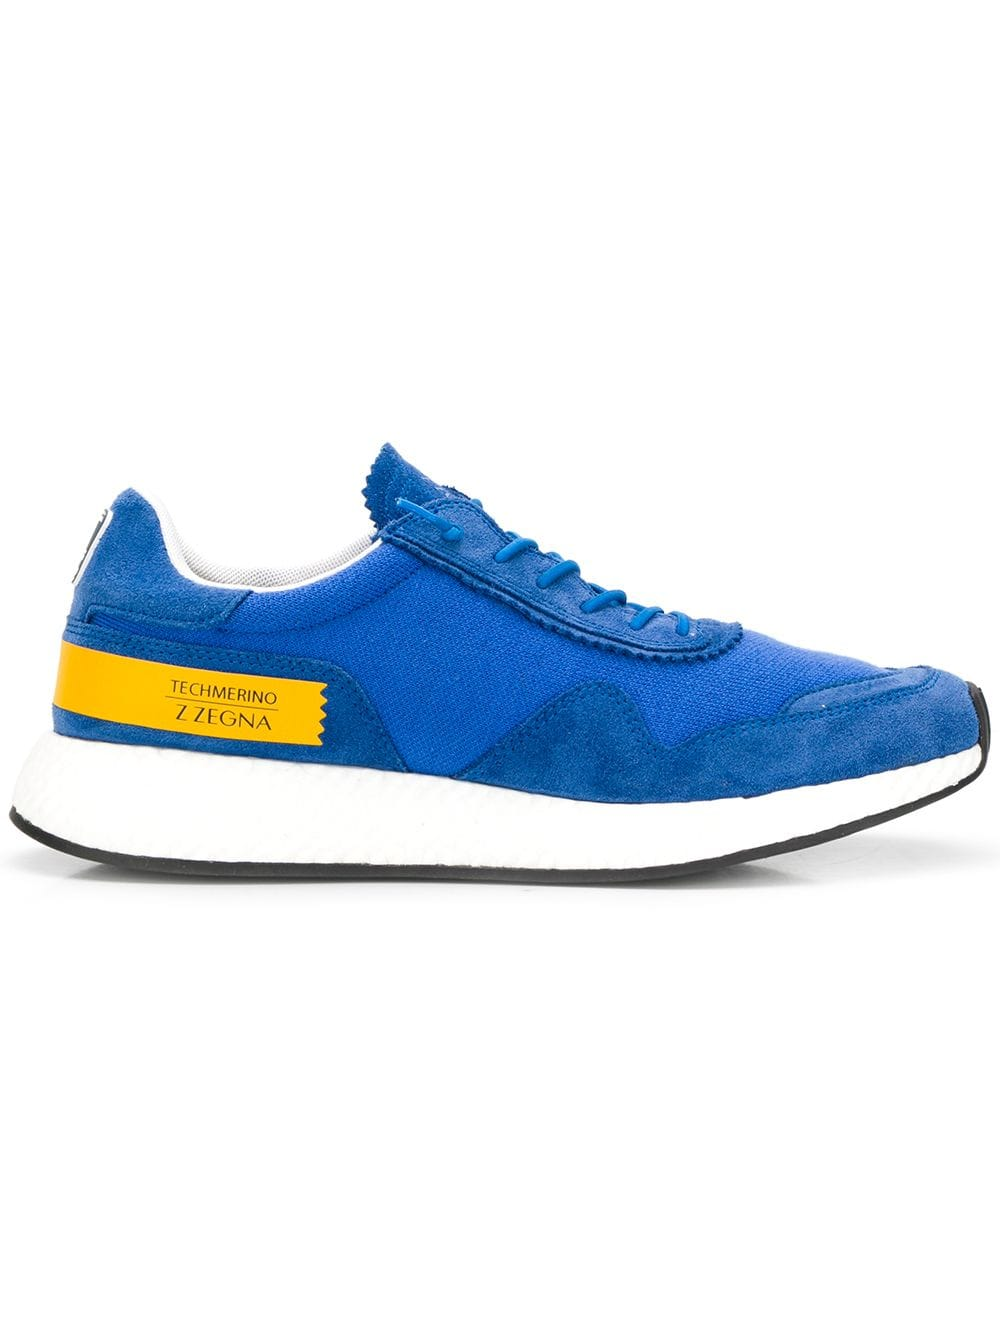 ea9c934a Z Zegna TECHMERINO™ sneakers - Blue in 2019 | Products | Sneakers ...